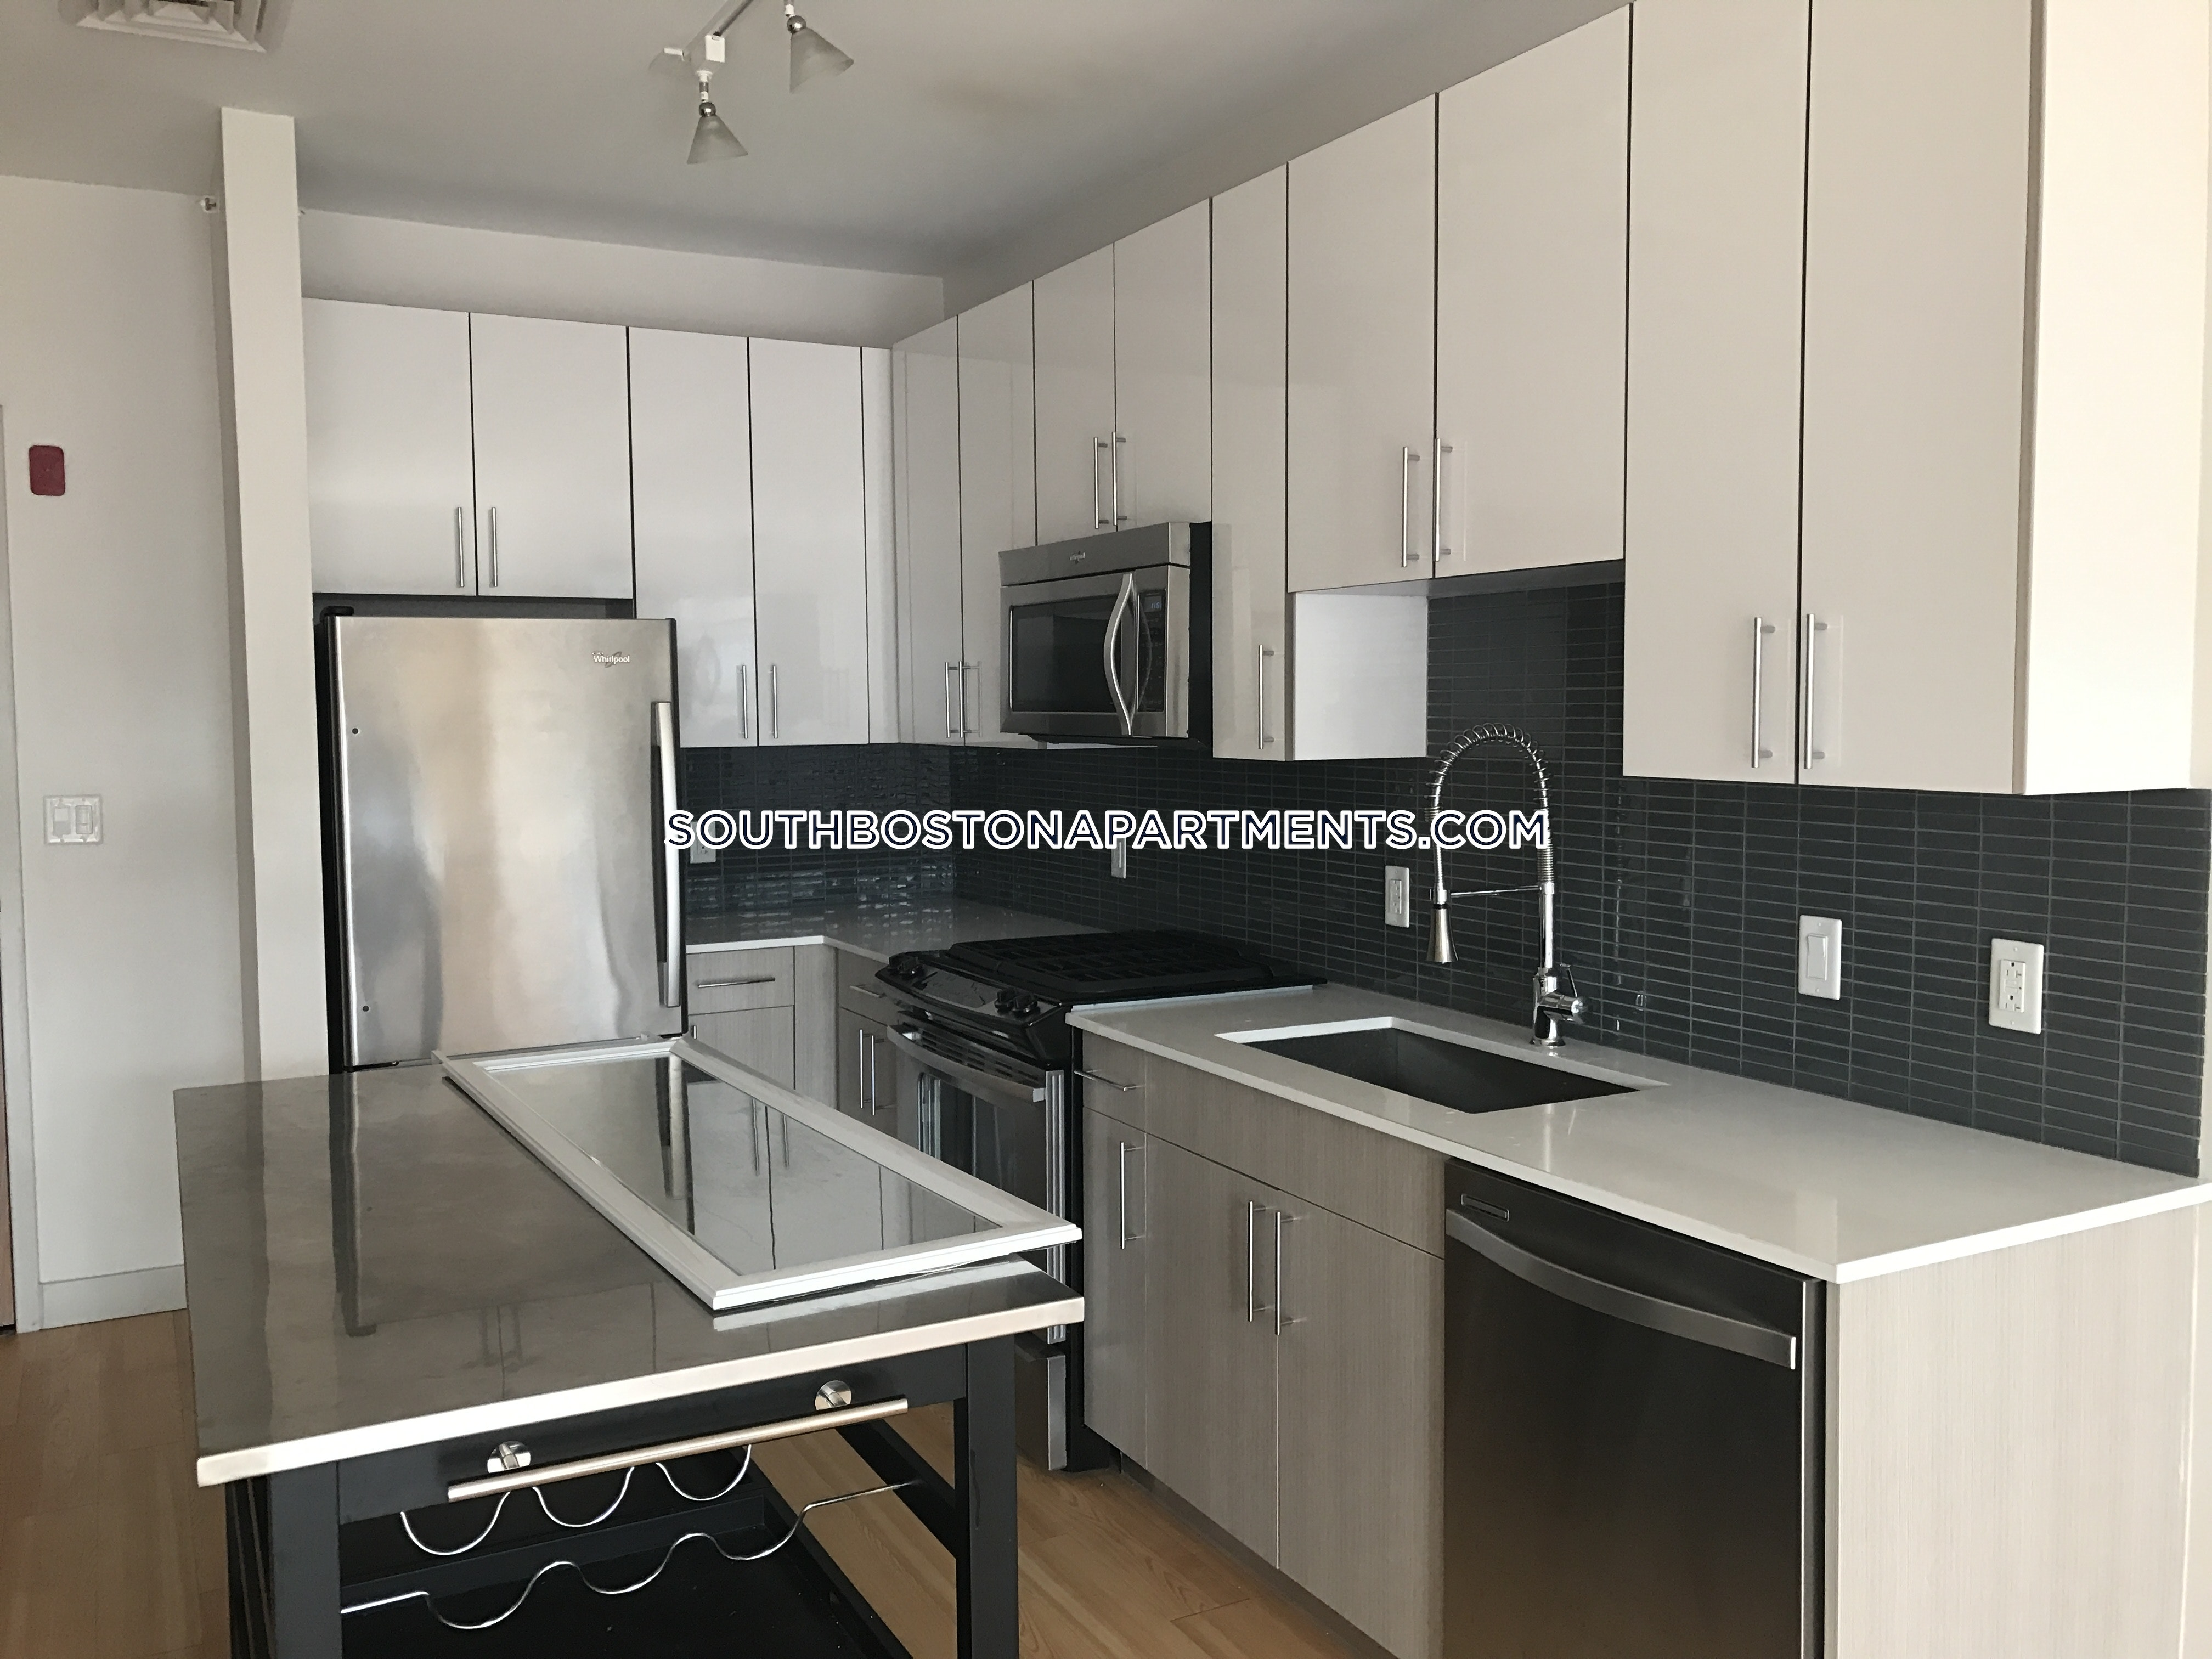 Stunning one bedroom/ one bath - Boston - South Boston - Seaport $4,000